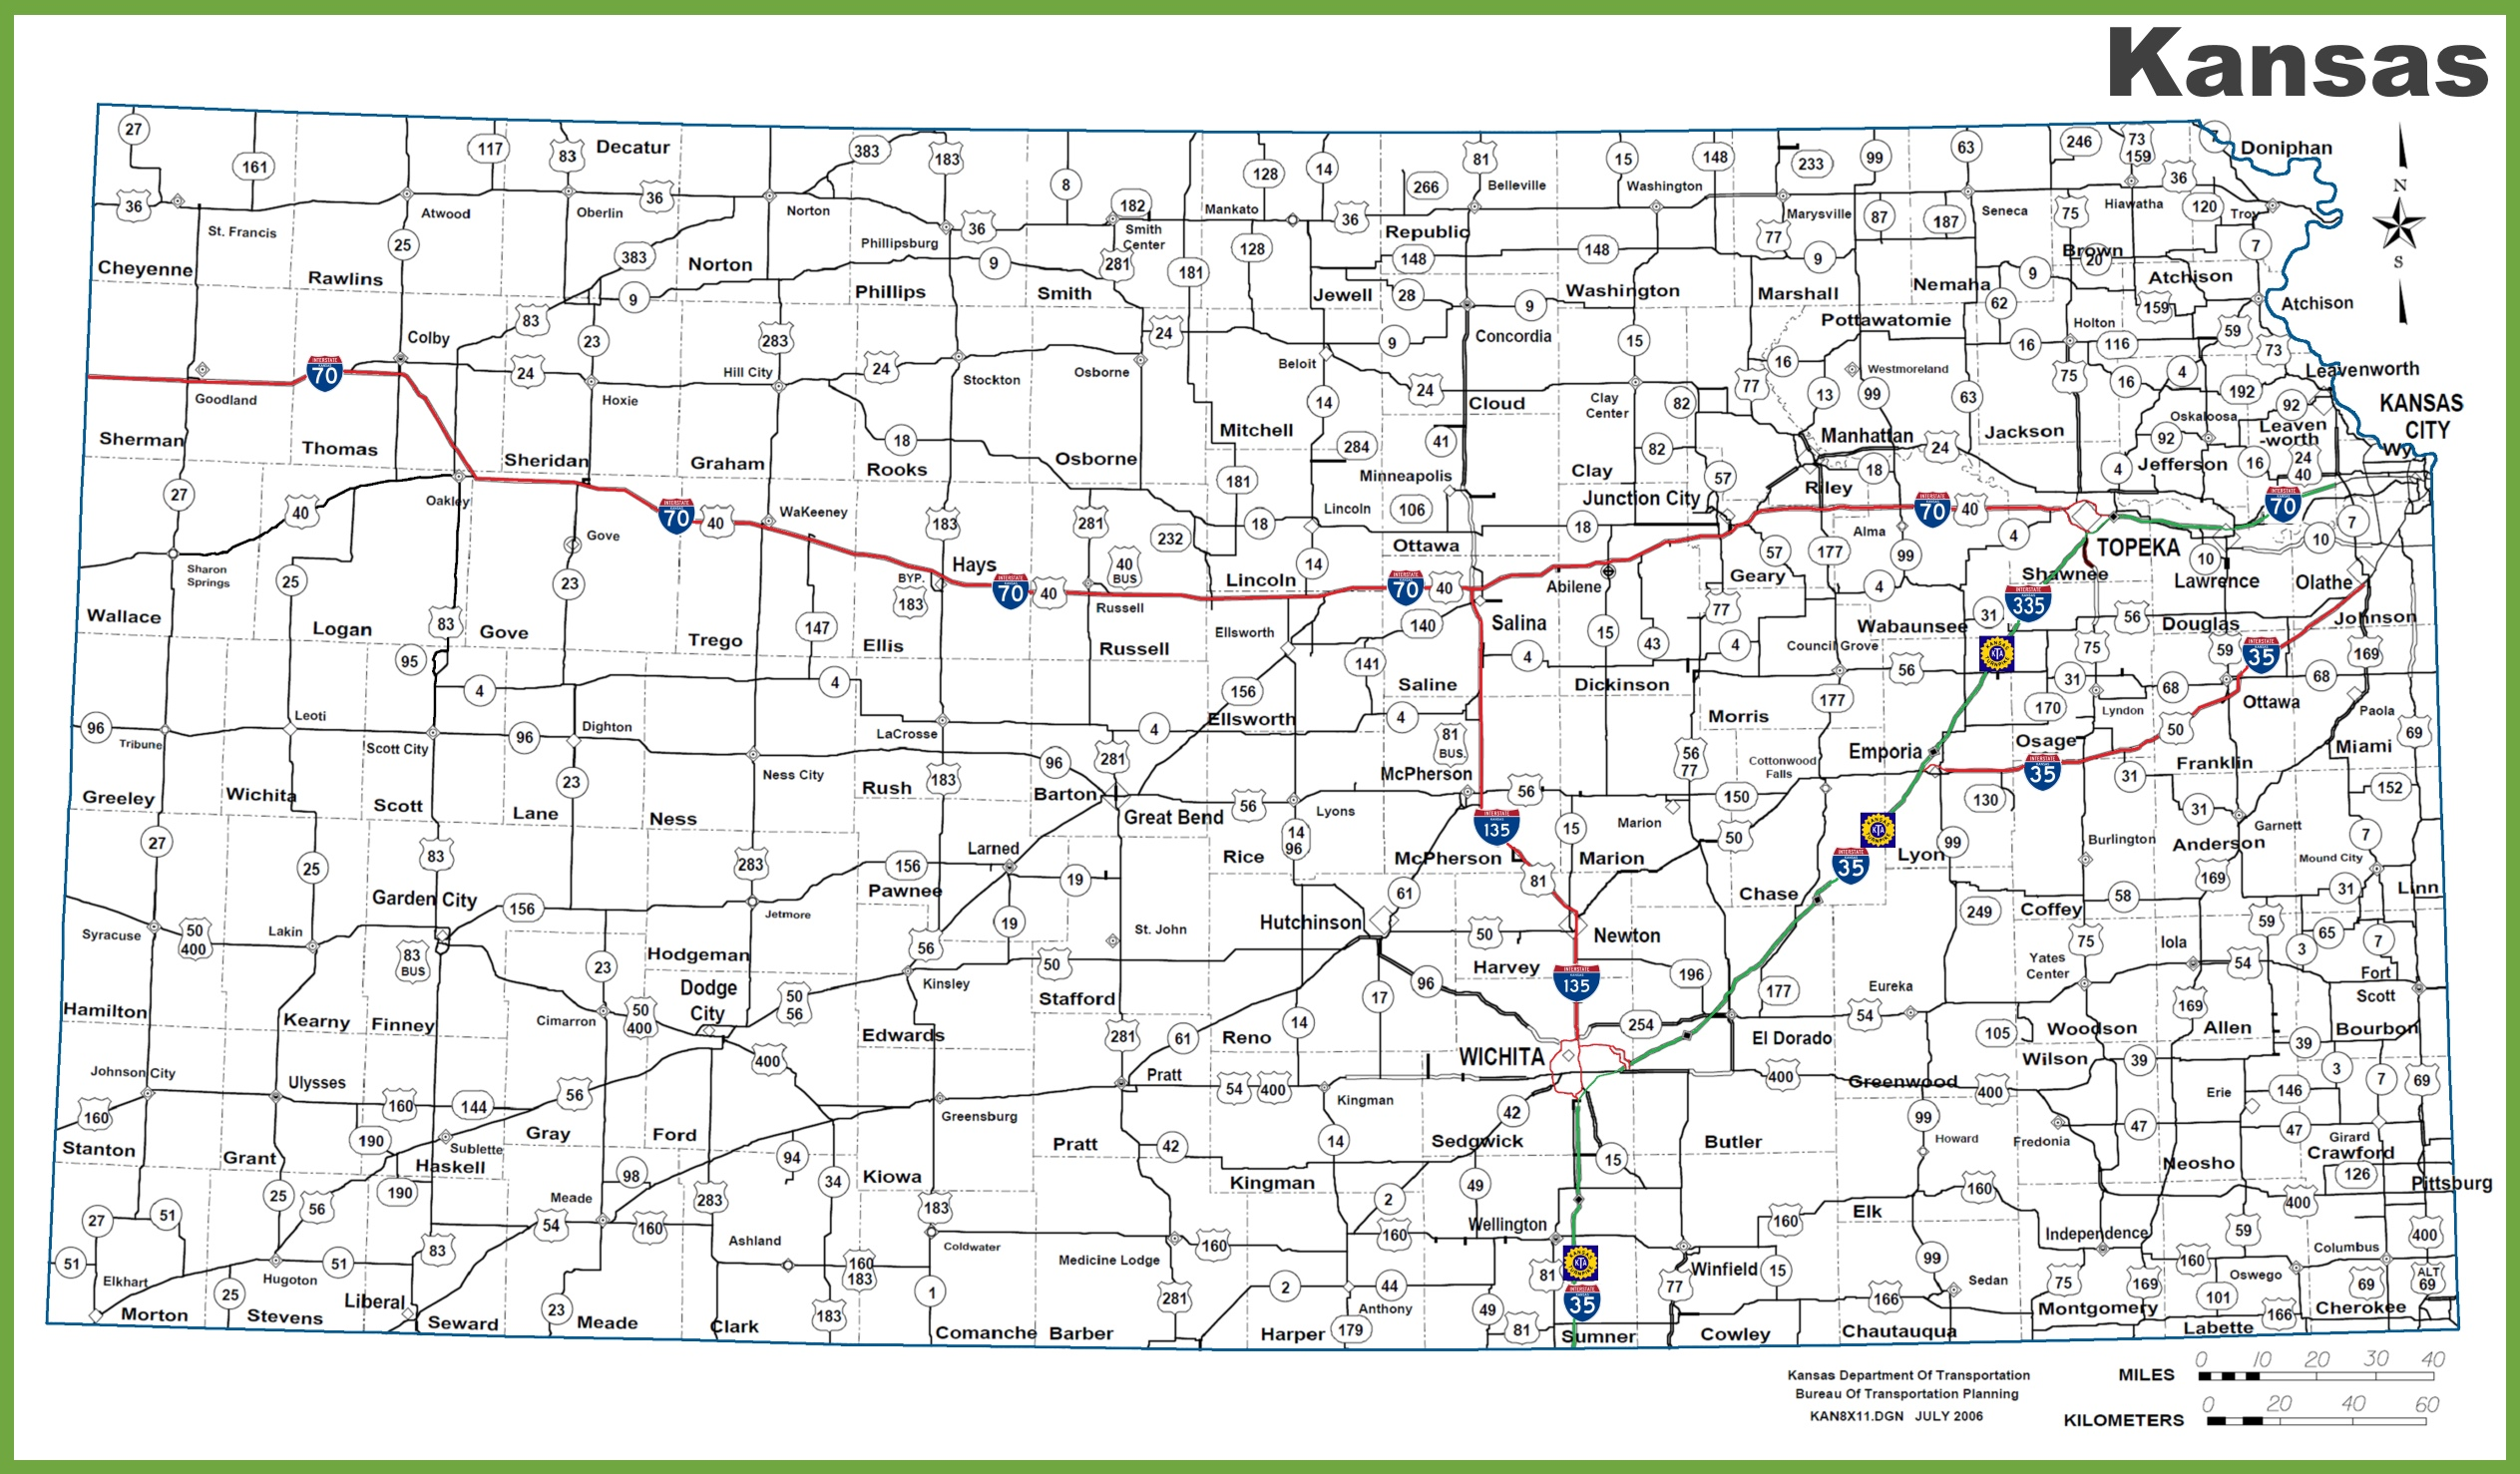 Kansas Road Map - Map of kansas